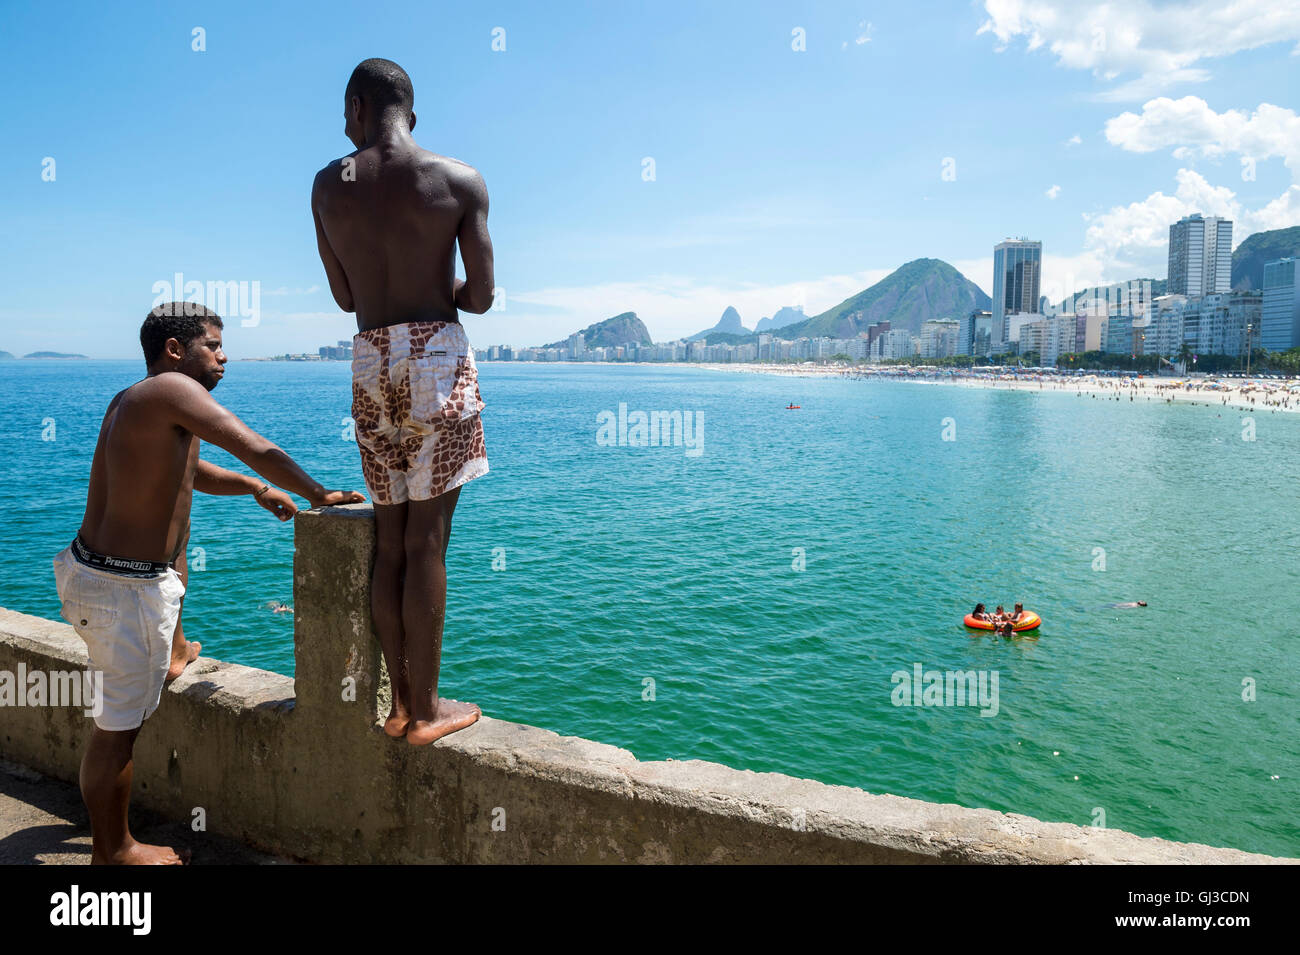 RIO DE JANEIRO - FEBRUARY 27, 2016: Young Brazilians gather to dive from the ledge at Leme, at the far end of Copacabana - Stock Image